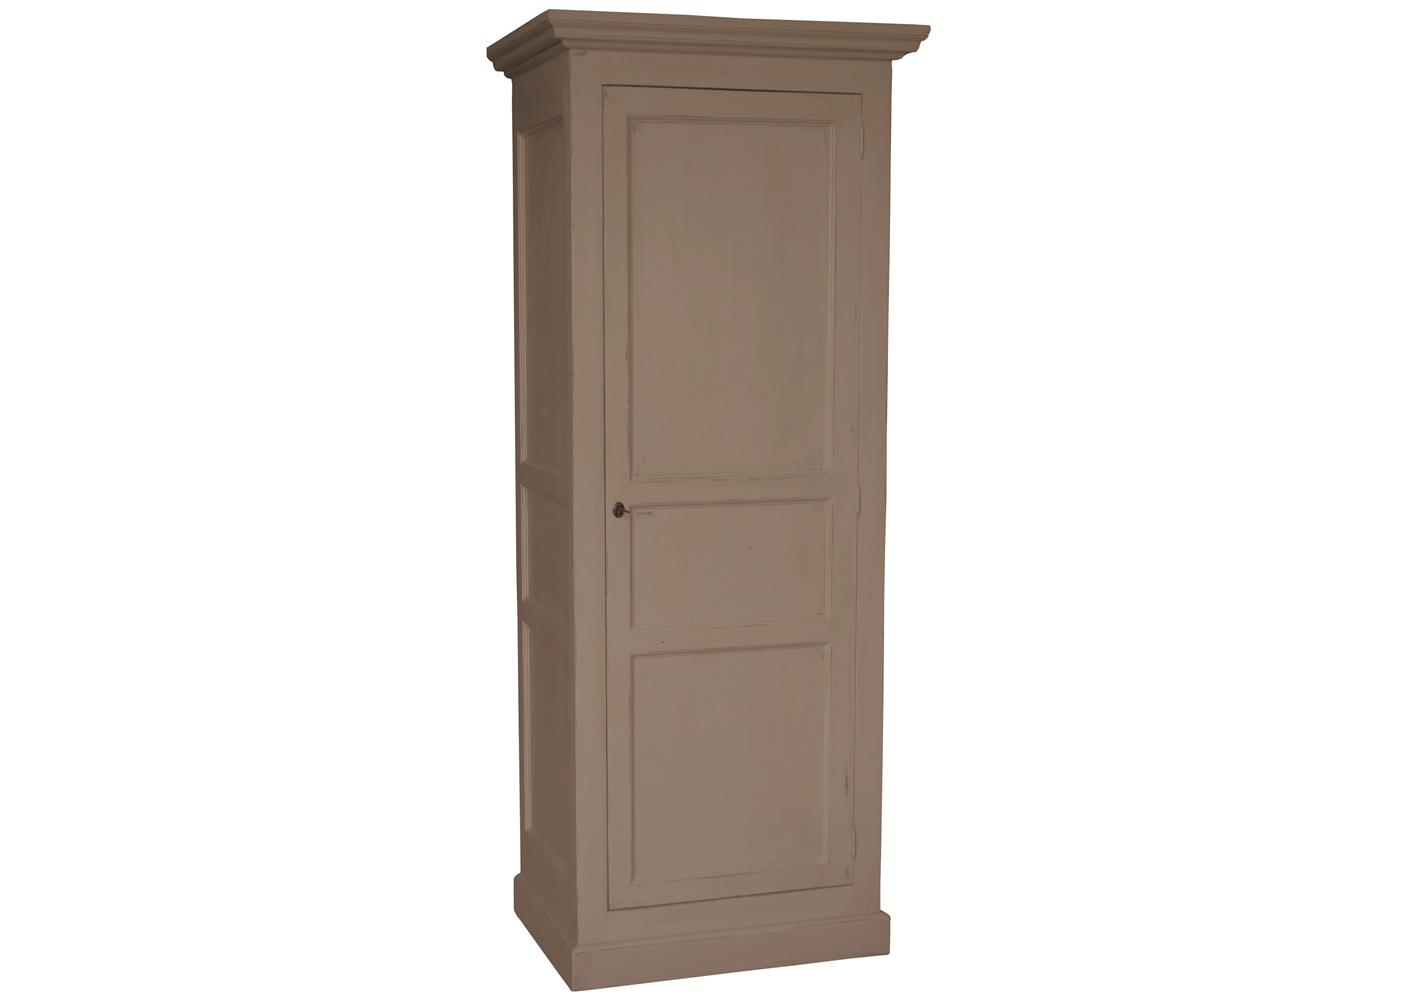 acheter votre armoire 1 porte en pin massif taupe toute. Black Bedroom Furniture Sets. Home Design Ideas